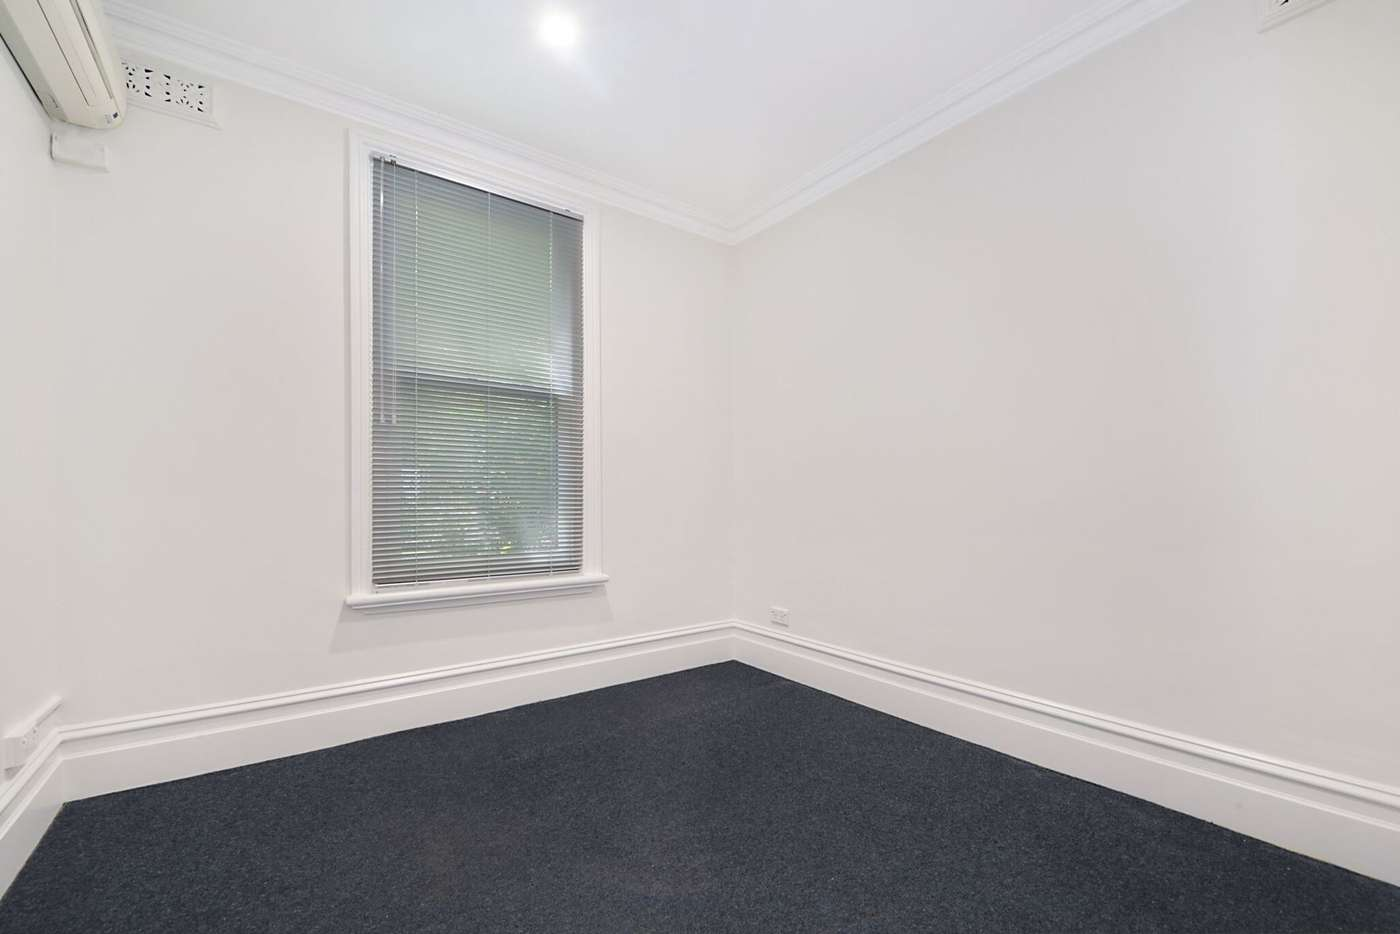 Seventh view of Homely terrace listing, 67 Boundary Street, Darlinghurst NSW 2010